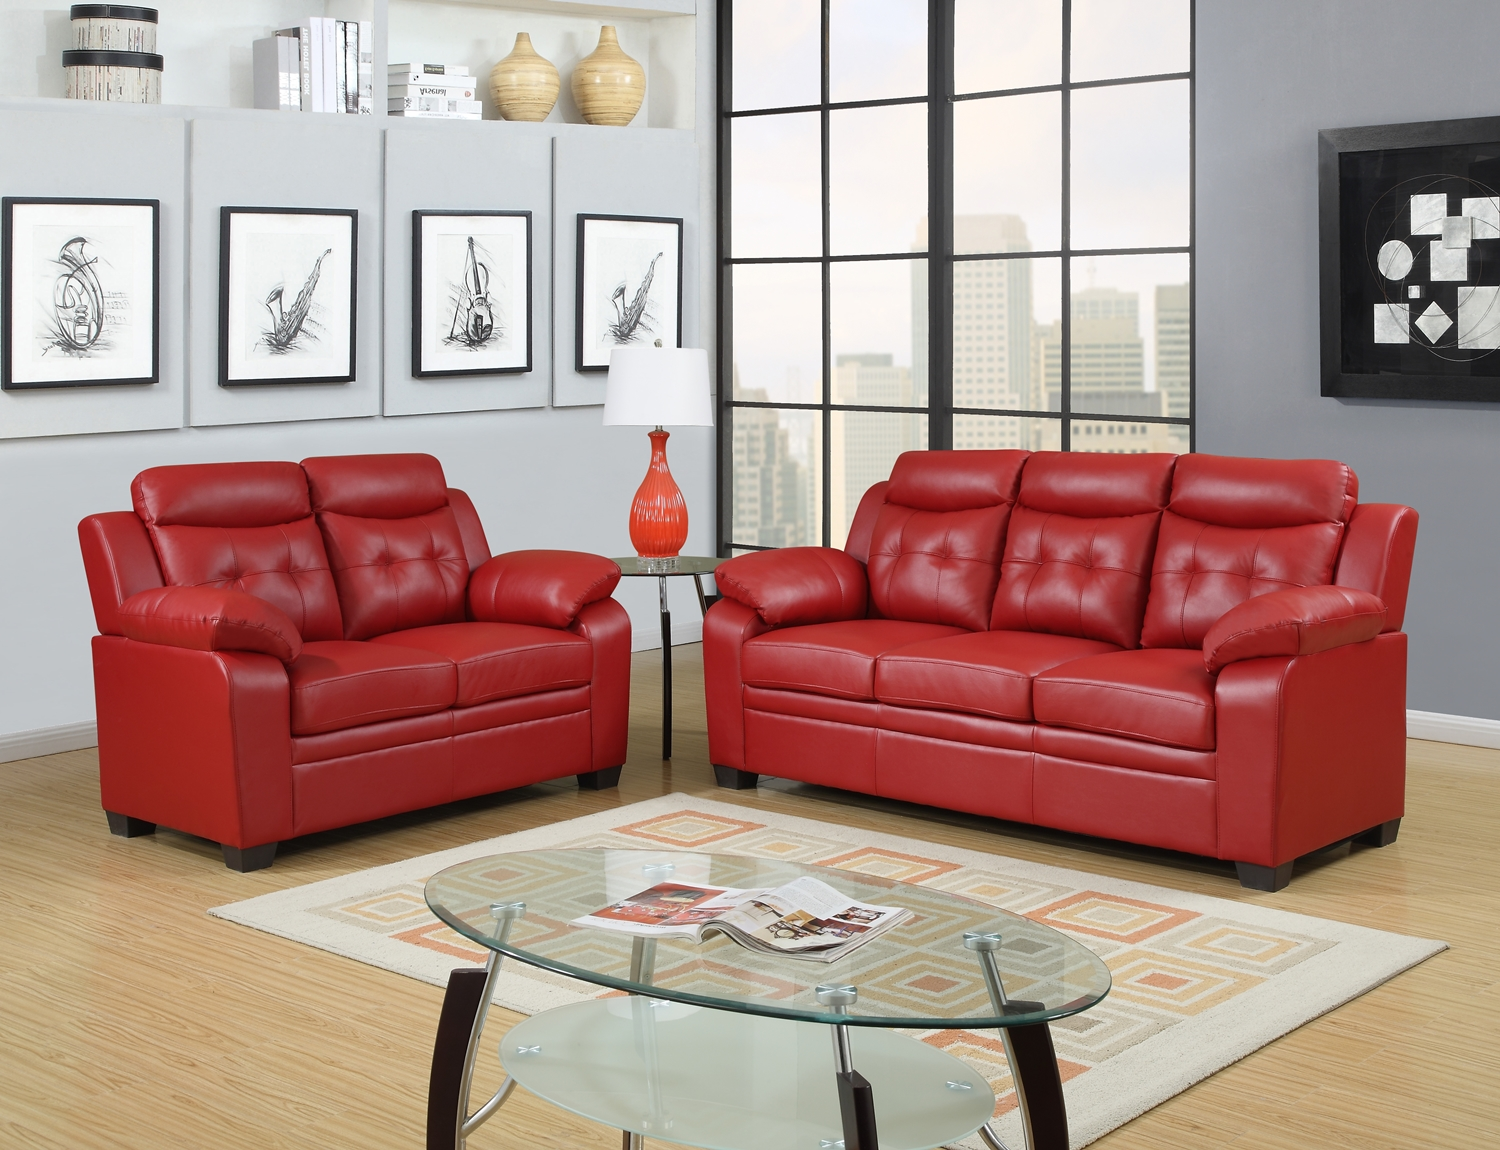 Best Red Apartment Sized Casual Contemporary Bonded Leather Living Room Sofa Love Set